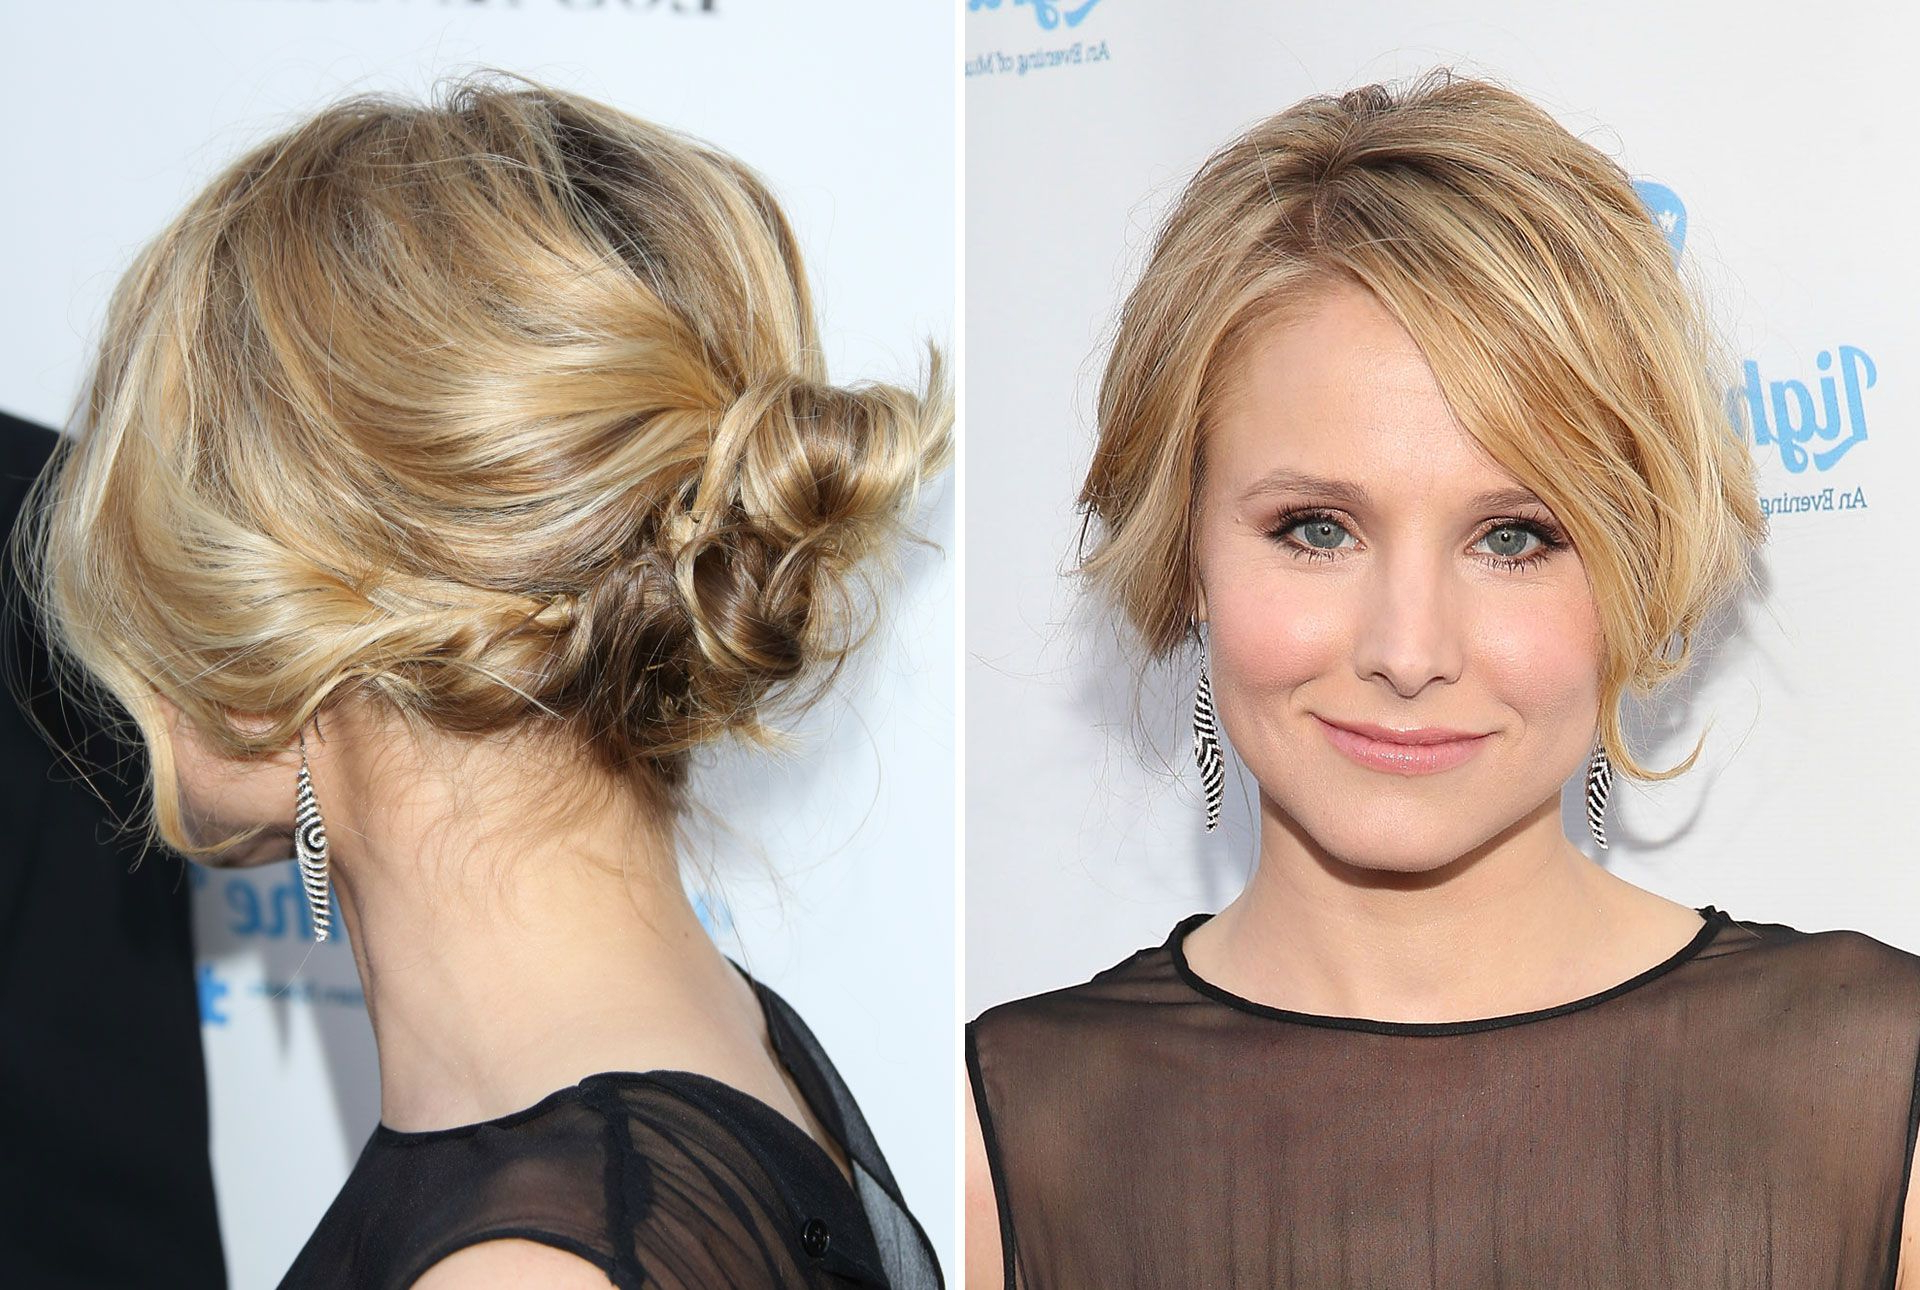 Favorite Loose Wedding Updos For Short Hair Regarding 20 Easy Wedding Guest Hairstyles – Best Hair Ideas For Wedding Guests (View 18 of 20)